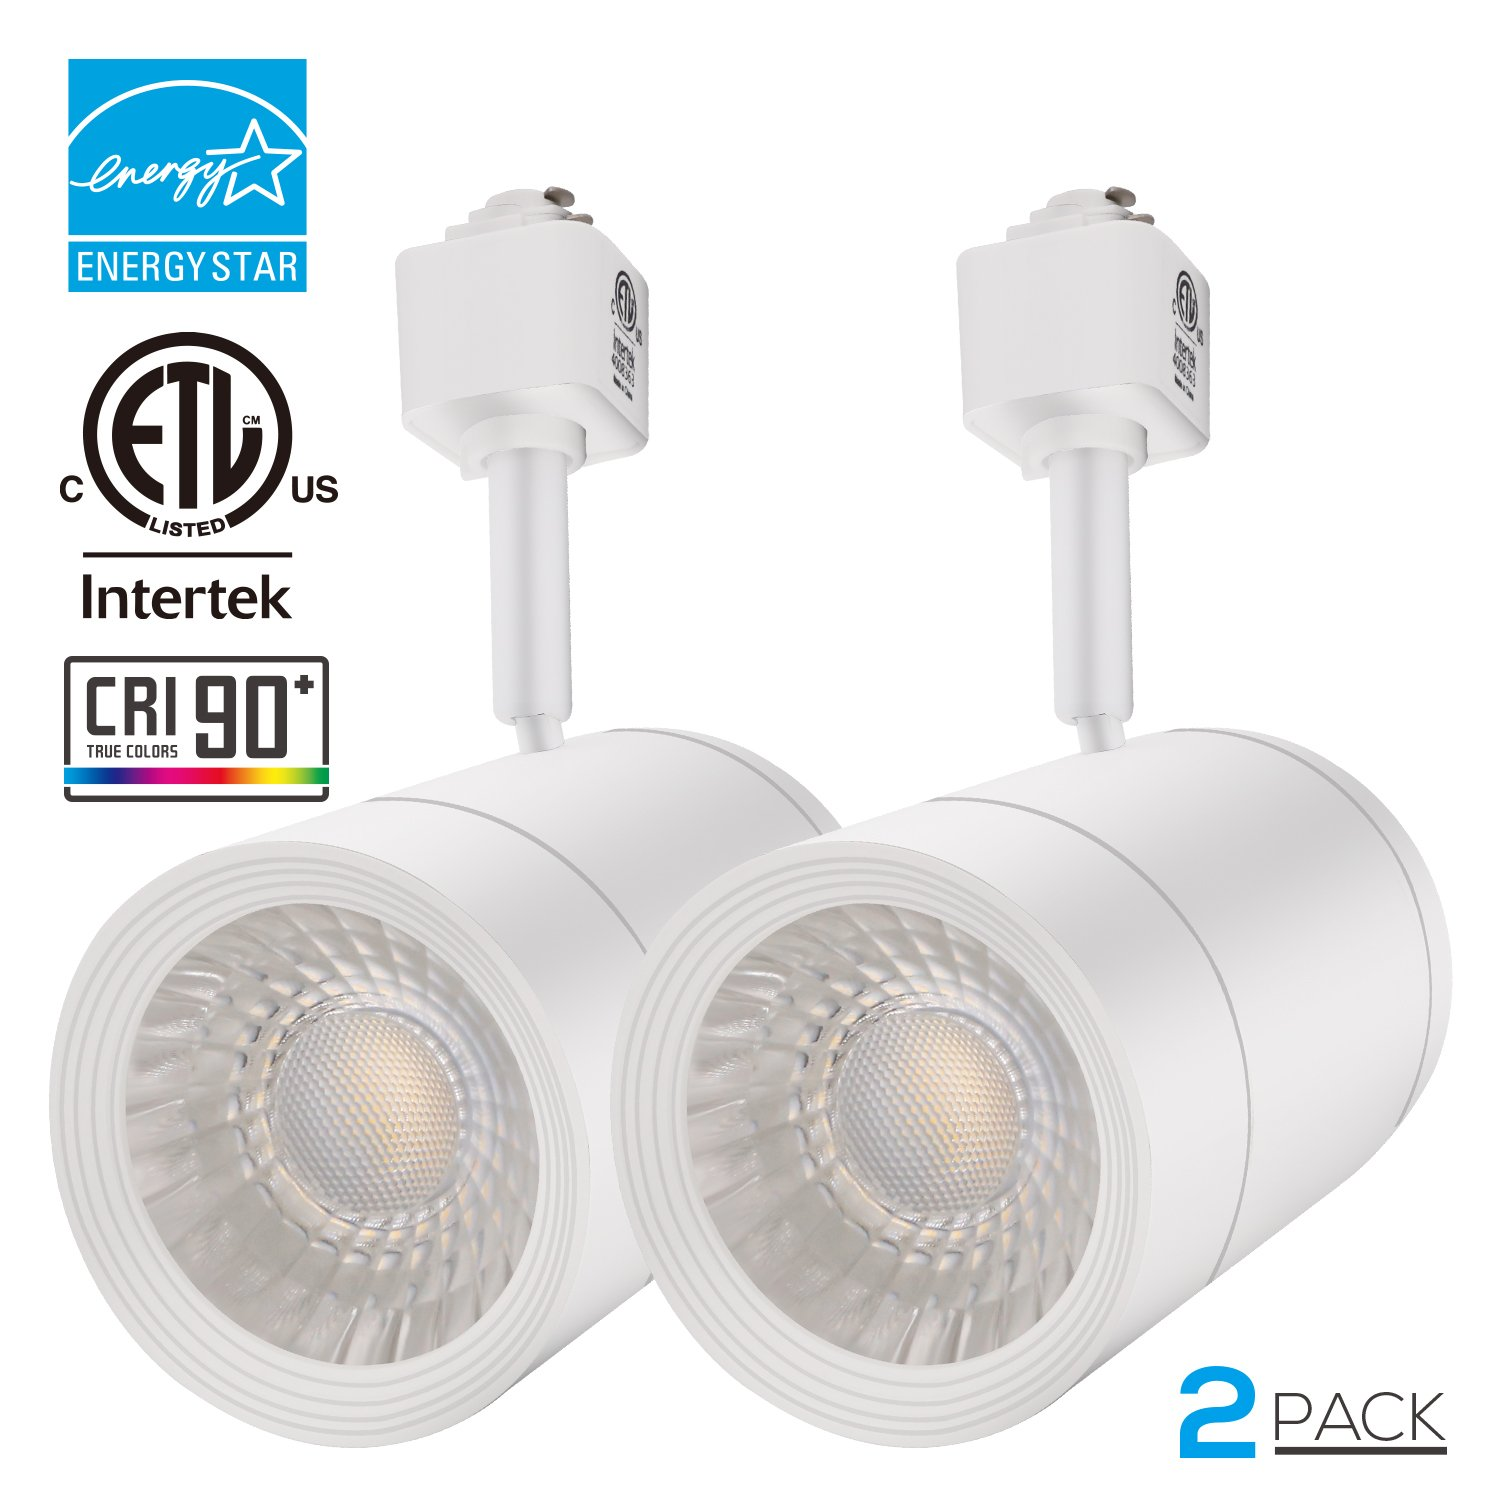 Best rated in track lighting heads helpful customer reviews integrated cri90 led track light head dimmable 38 spotlight track light 1200lm energy star etl listed for accent task wall art exhibition lighting aloadofball Images